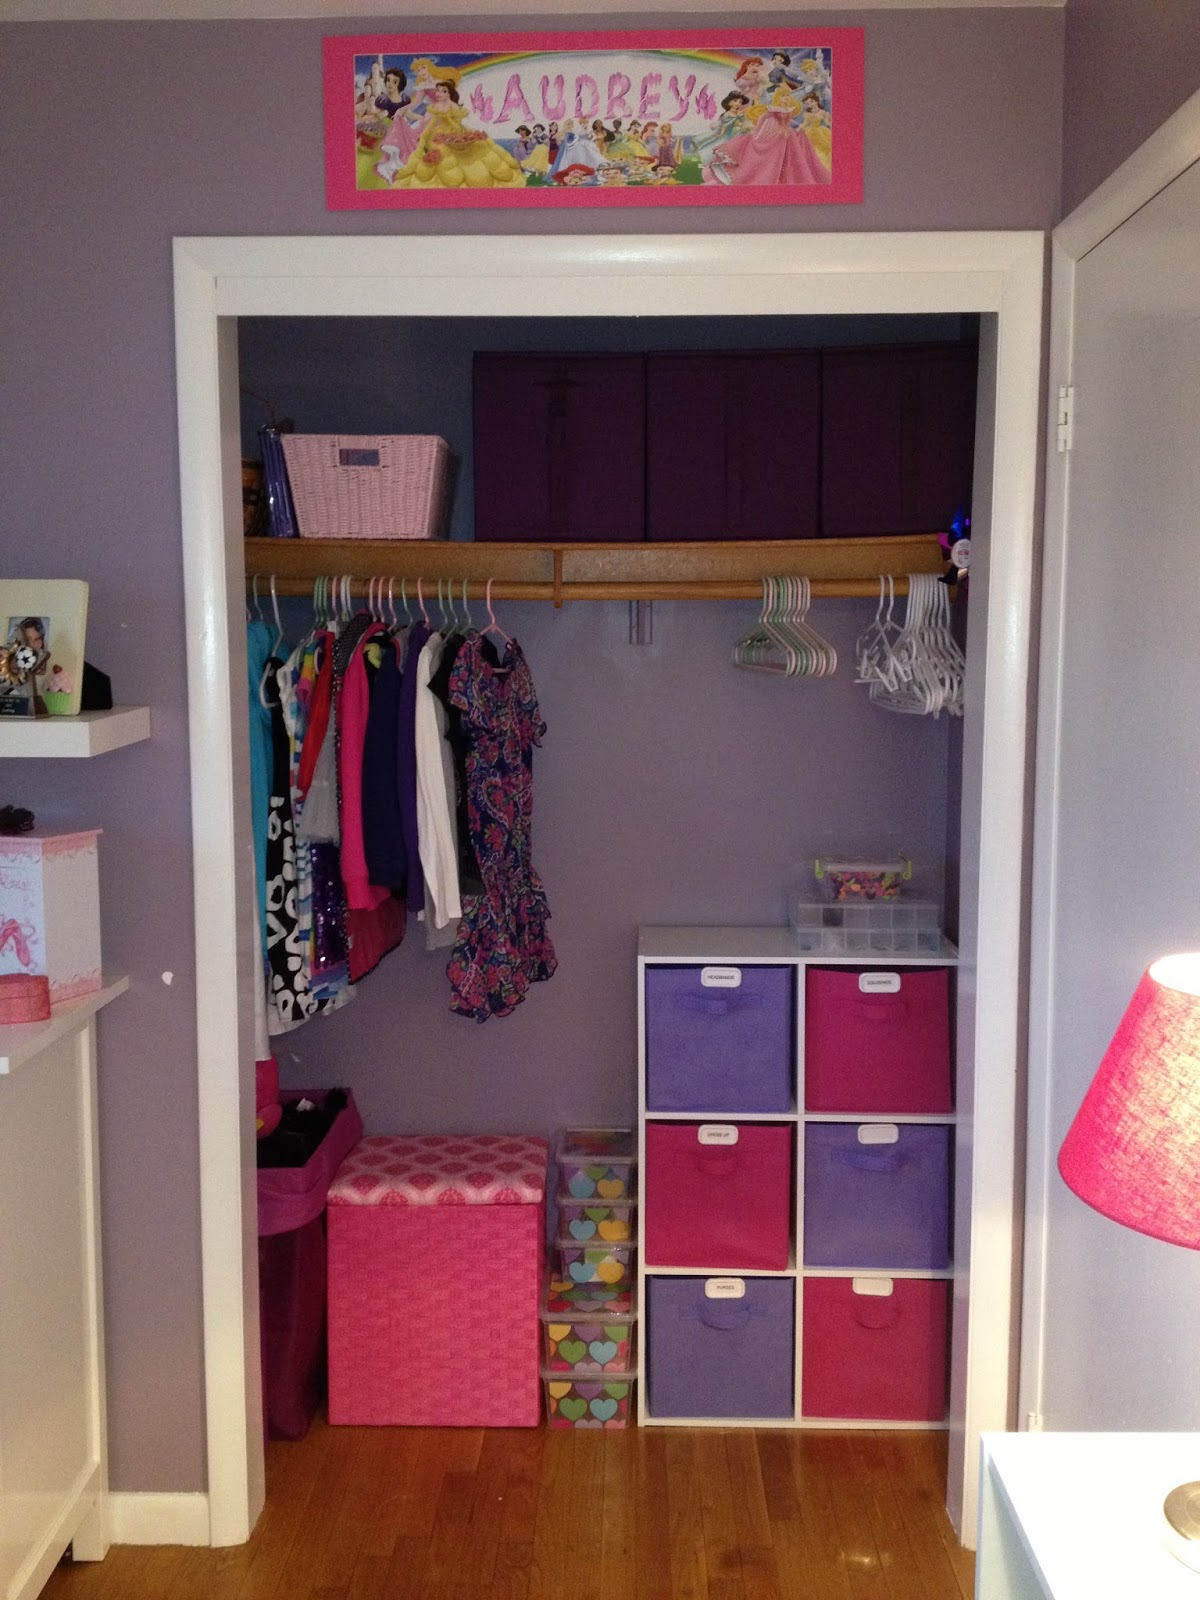 13 Year Bedroom Boy: Organizing For Six: My Daughter's Room